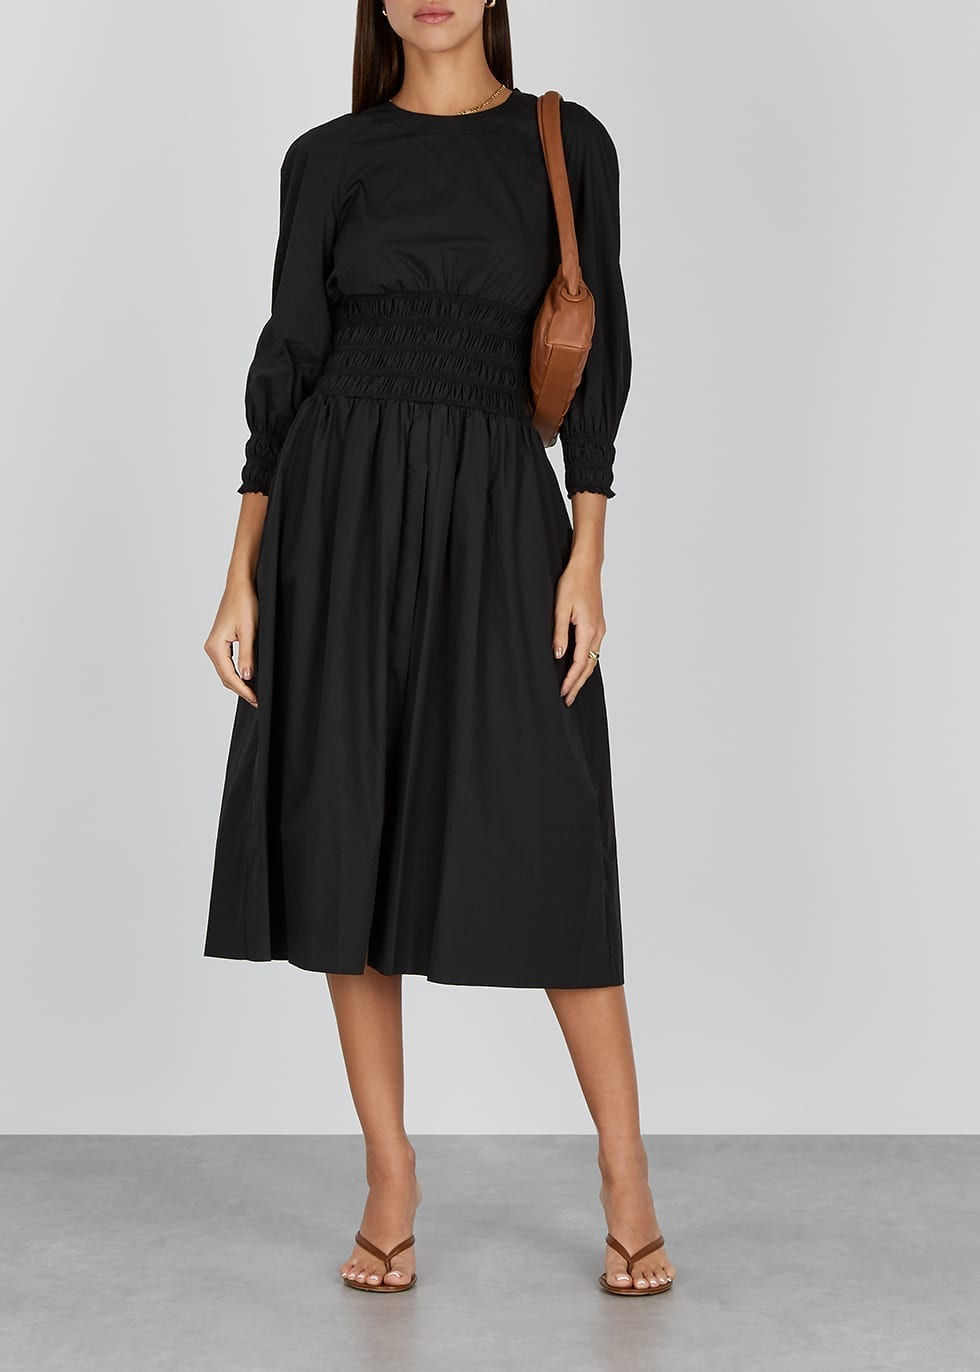 THREE GRACES Arianna Black Cotton Midi Dress